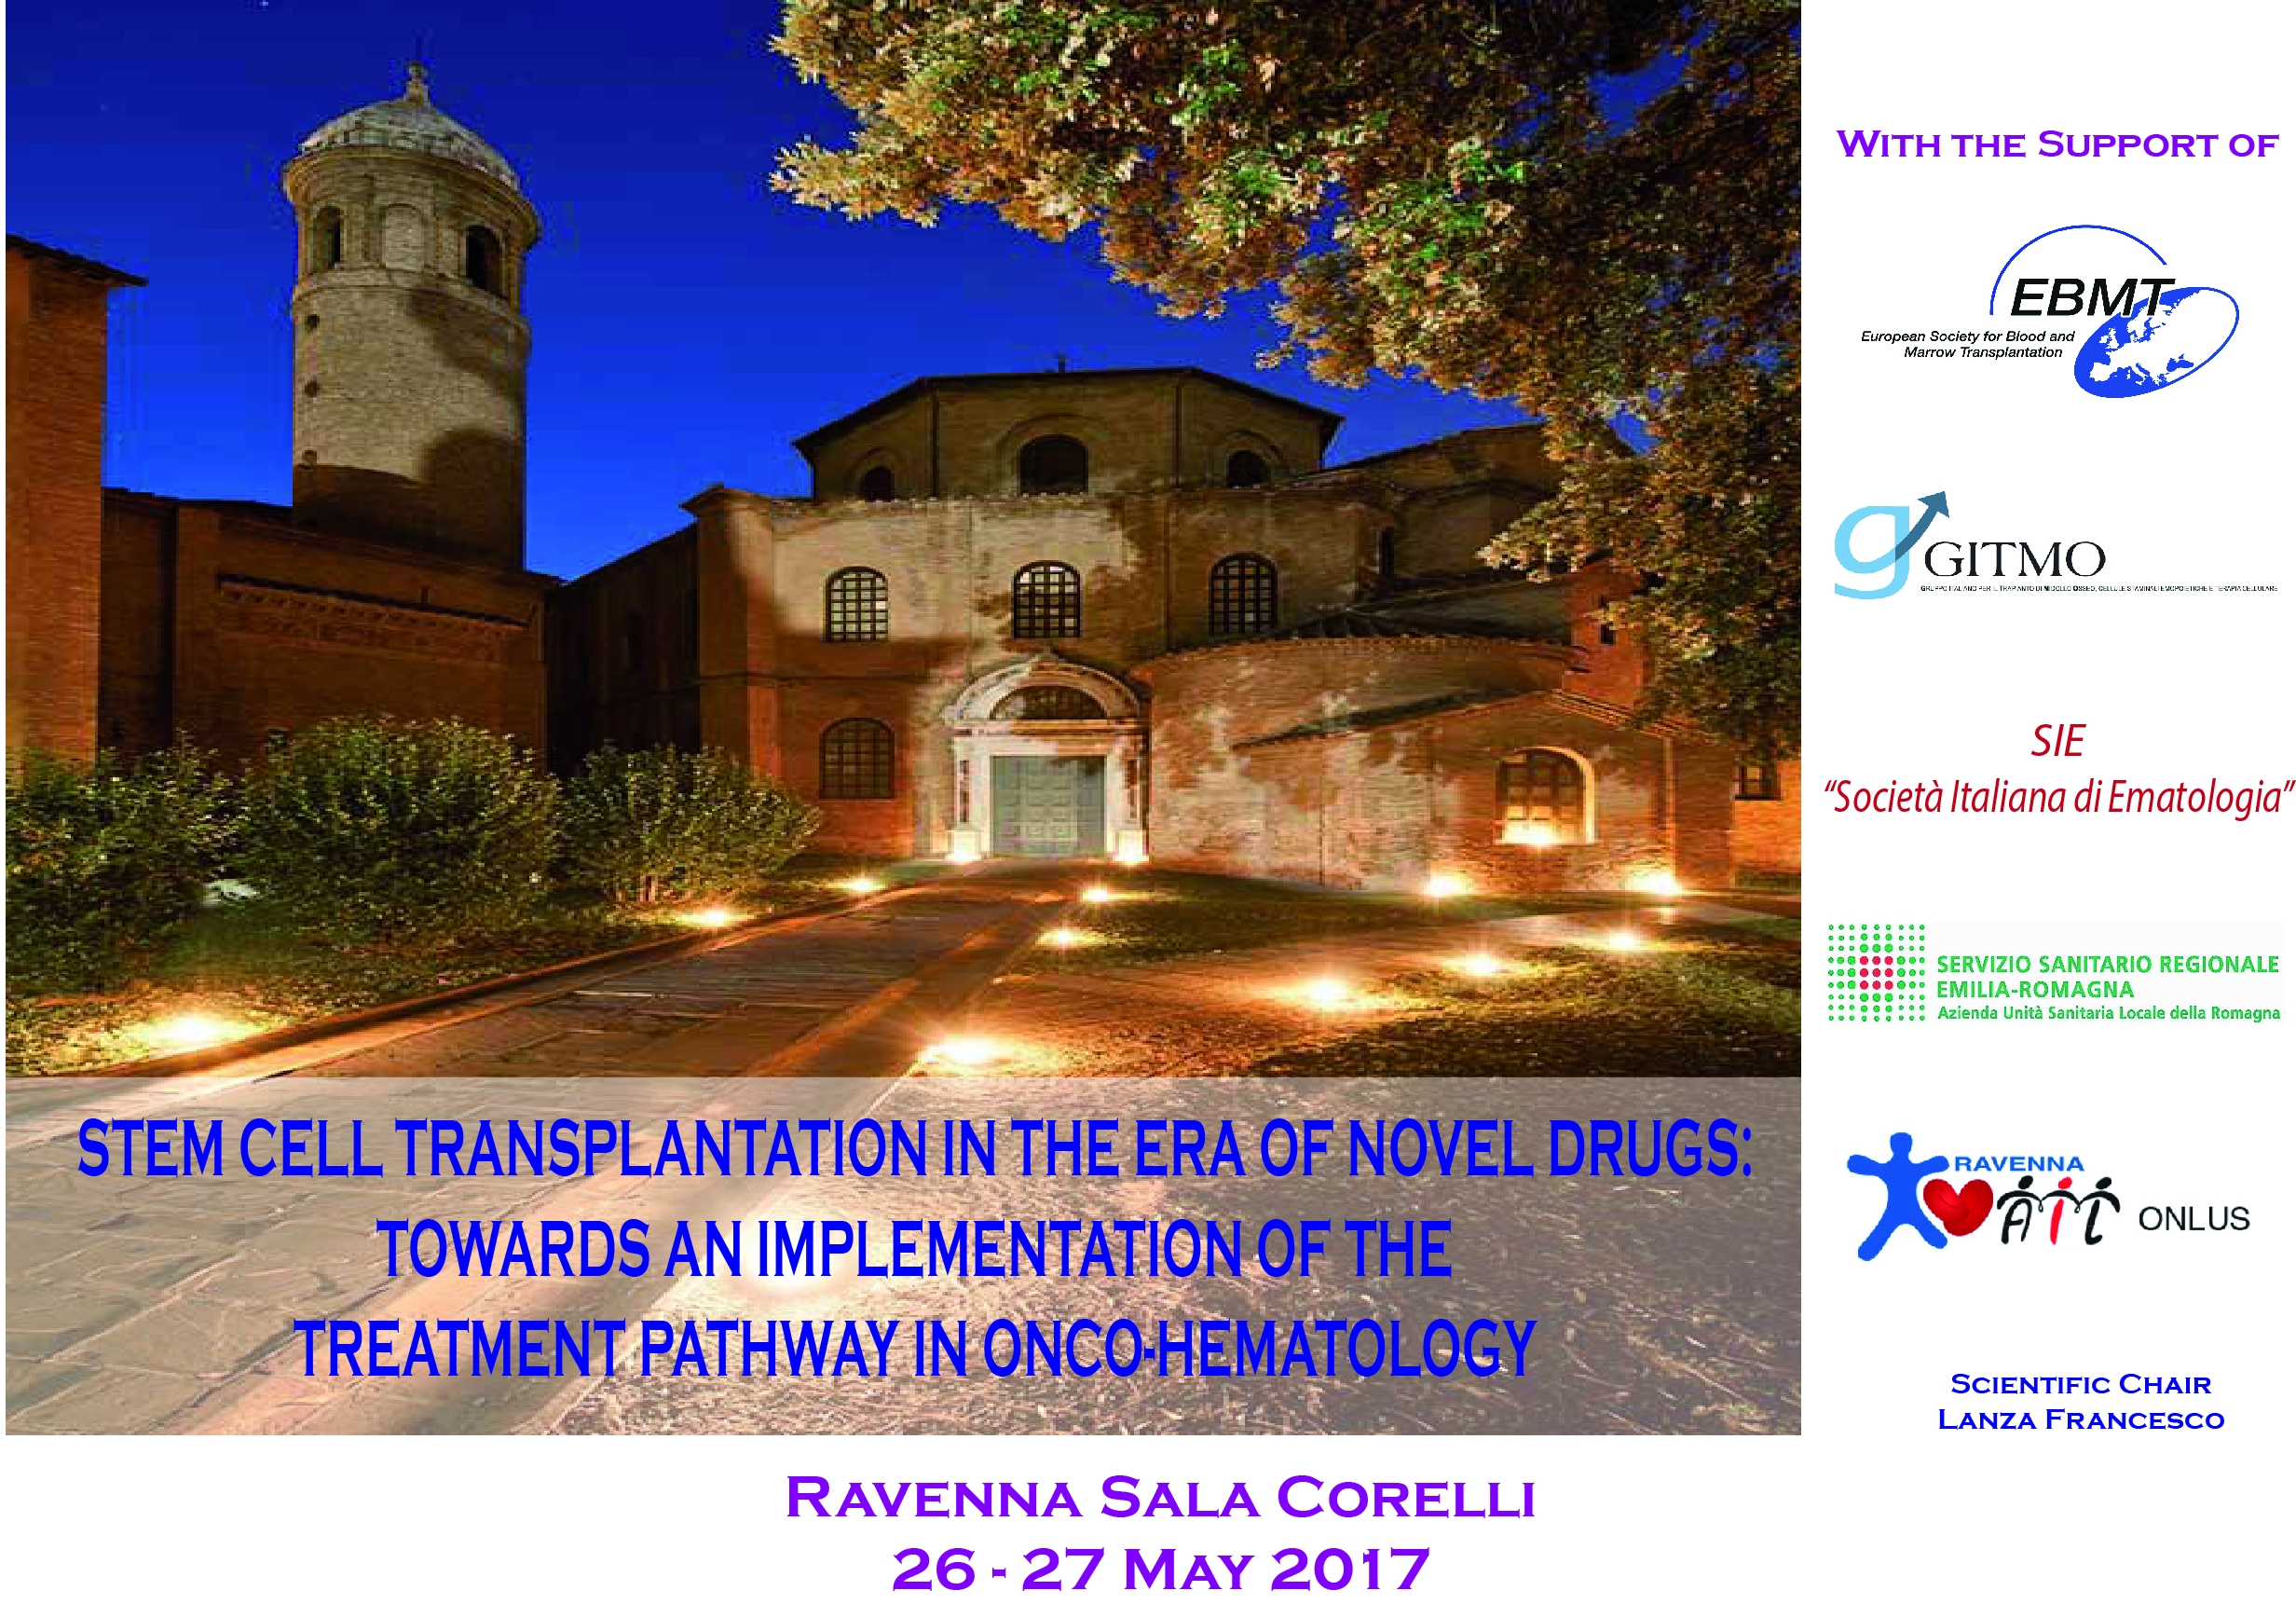 STEM CELL TRANSPLANTATION IN THE ERA OF NOVEL DRUGS: TOWARDS AN IMPLEMENTATION OF THE TREATMENT PATHWAY IN ONCO-HEMATOLOGY - RAVENNA